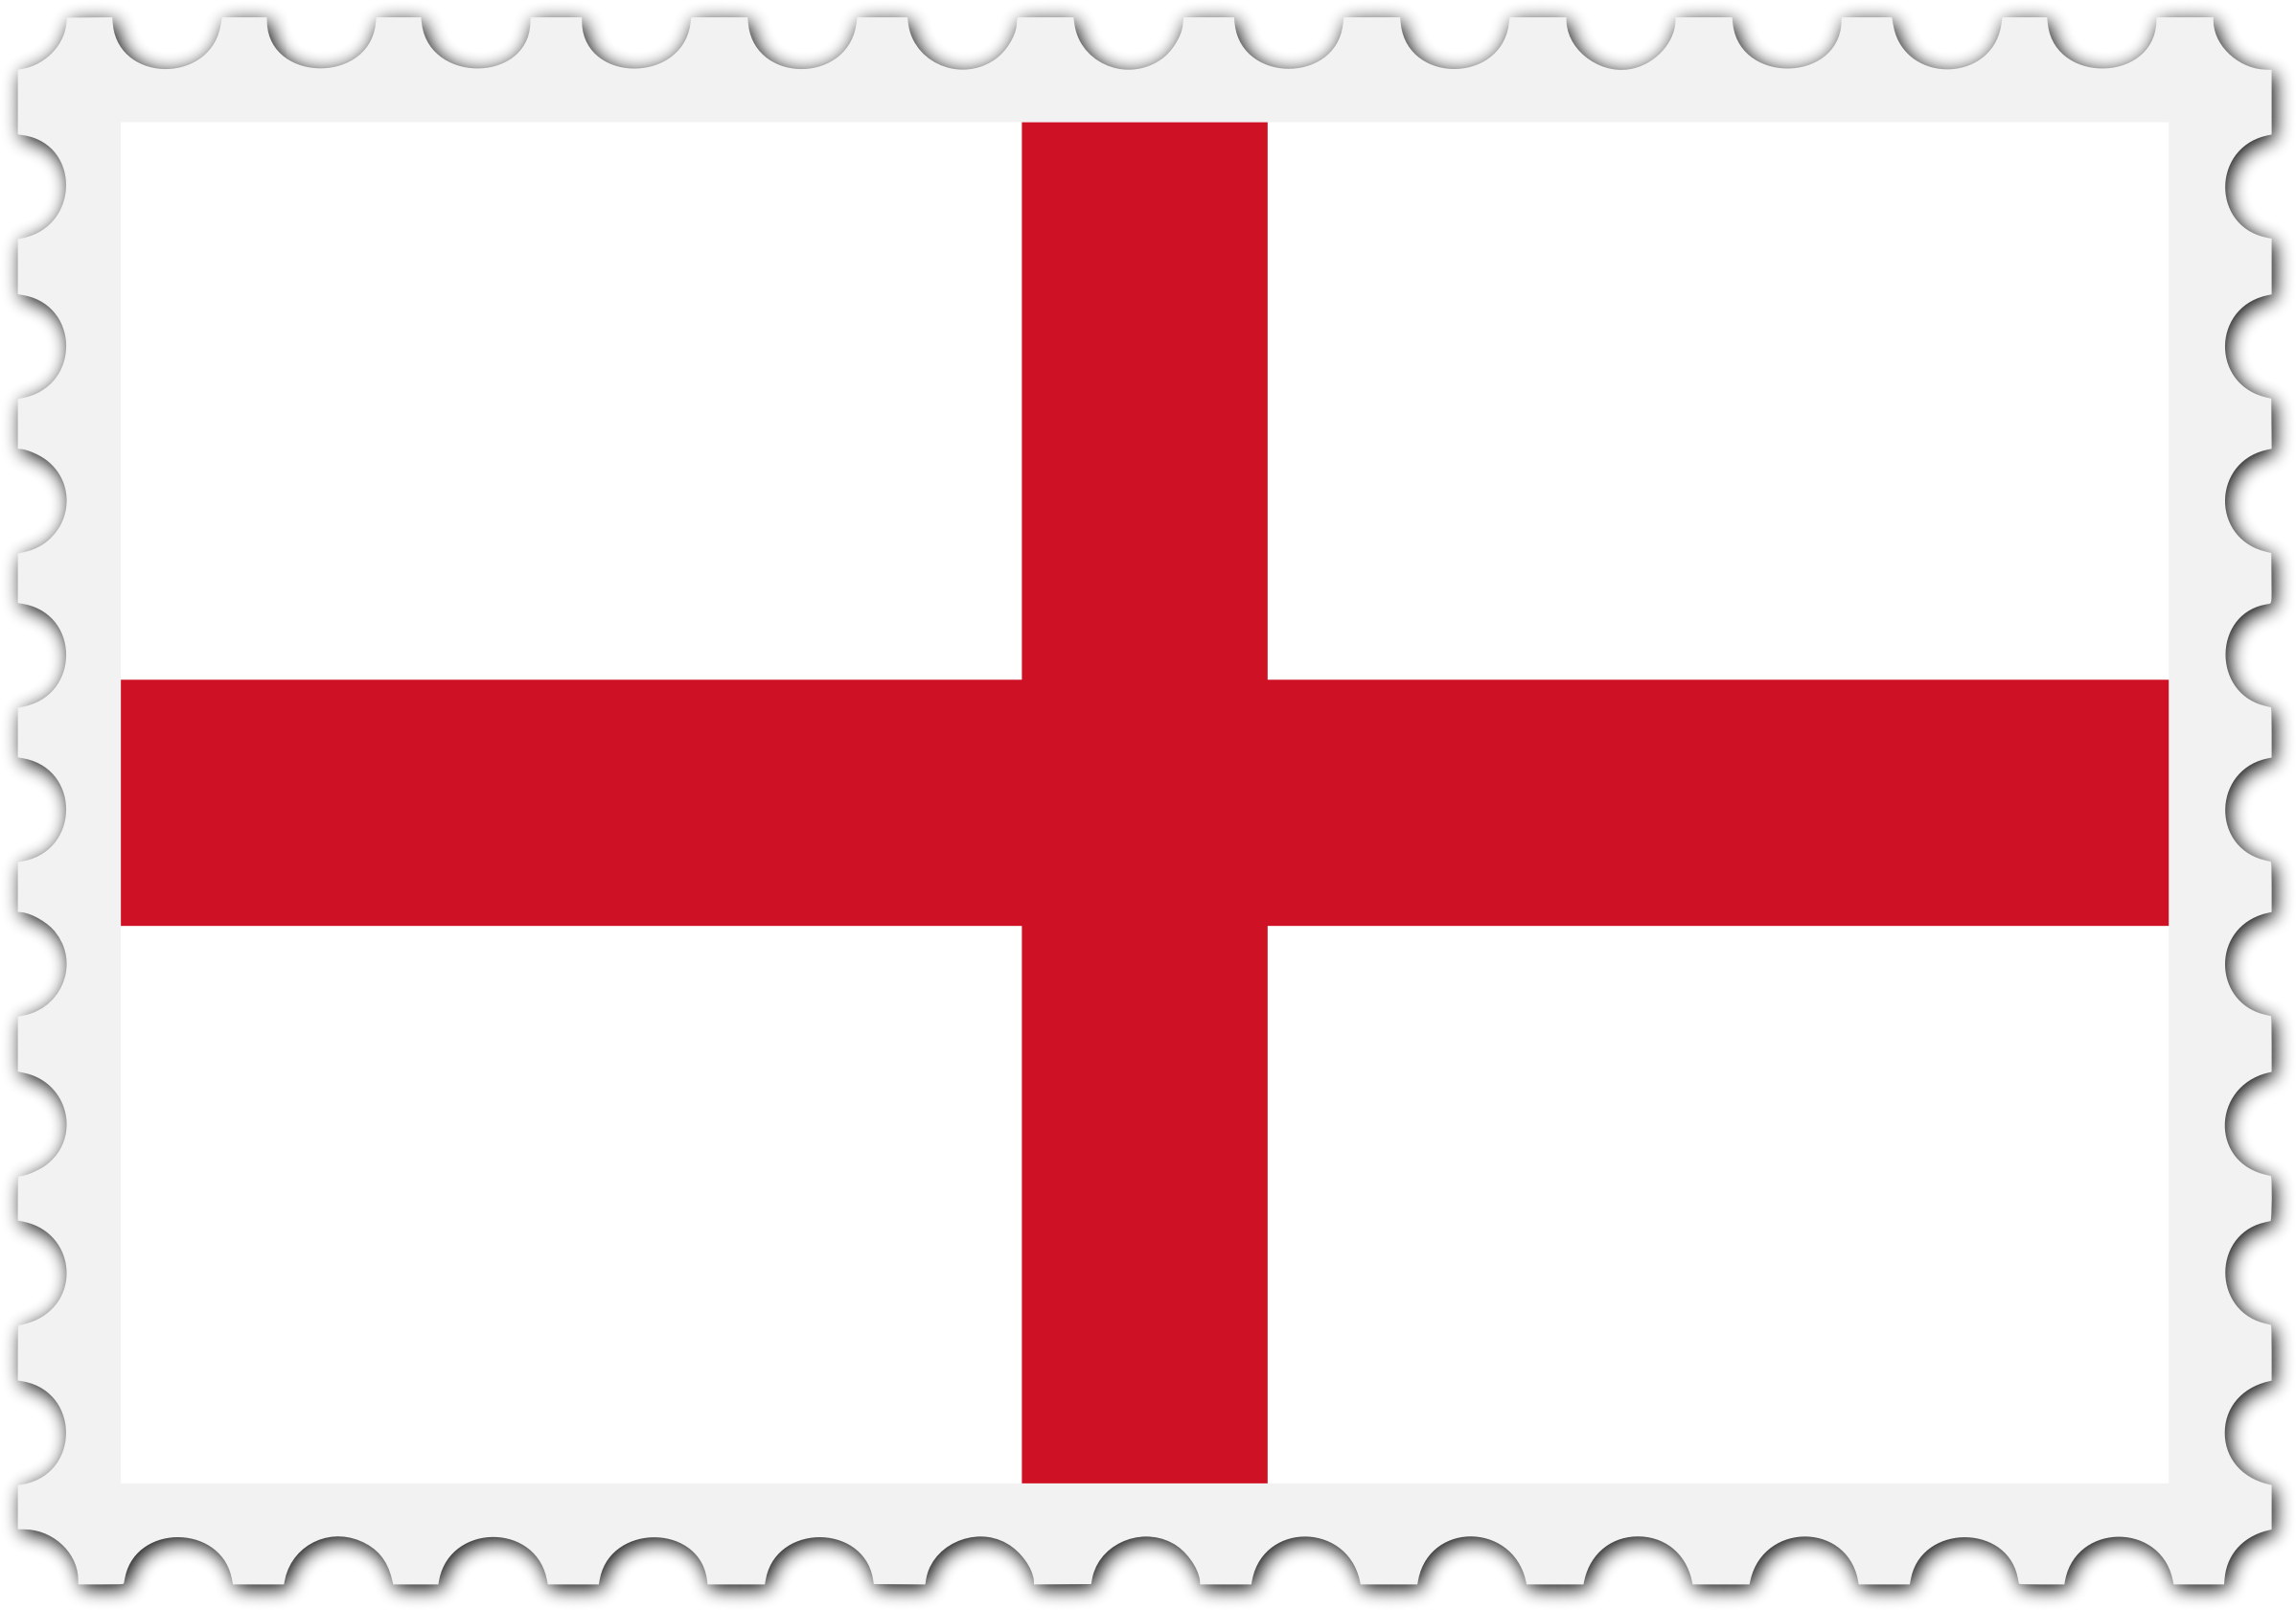 England flag stamp by Firkin